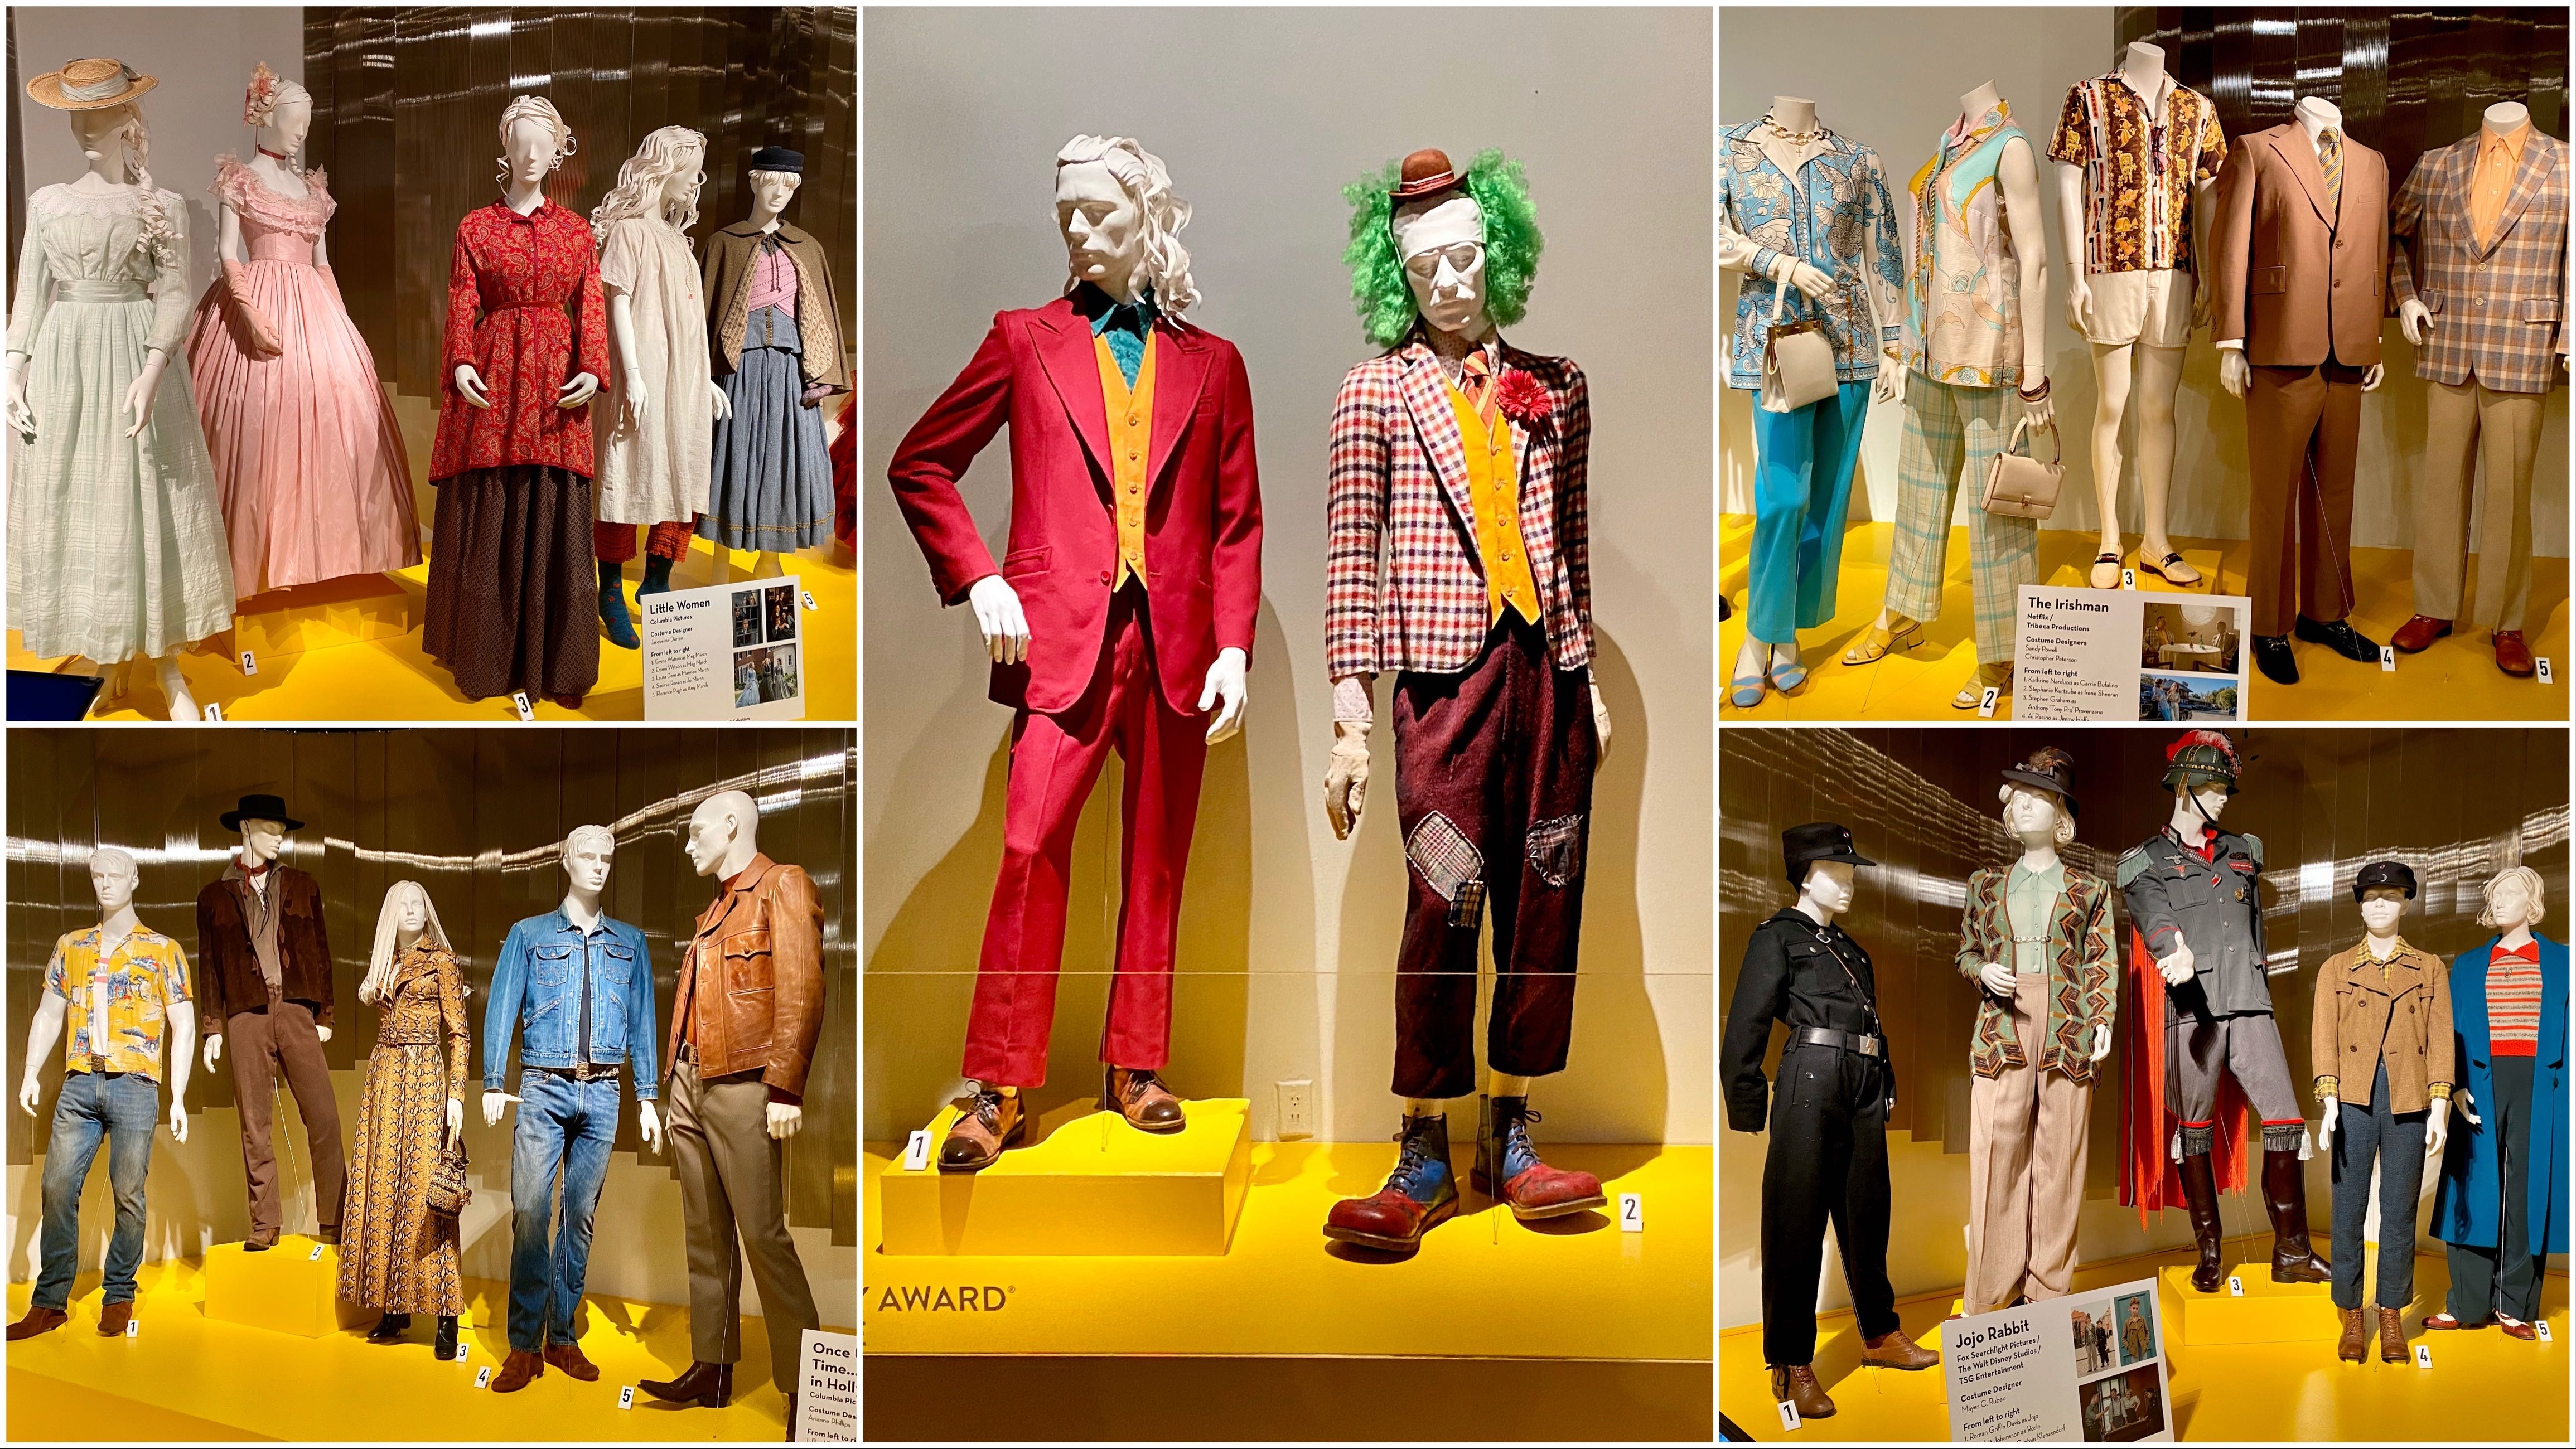 Oscars 2020 La Exhibit Gives Up Close Look At Costumes From Oscar Nominated Movies Including Joker Jojo Rabbit Other Films Abc11 Raleigh Durham